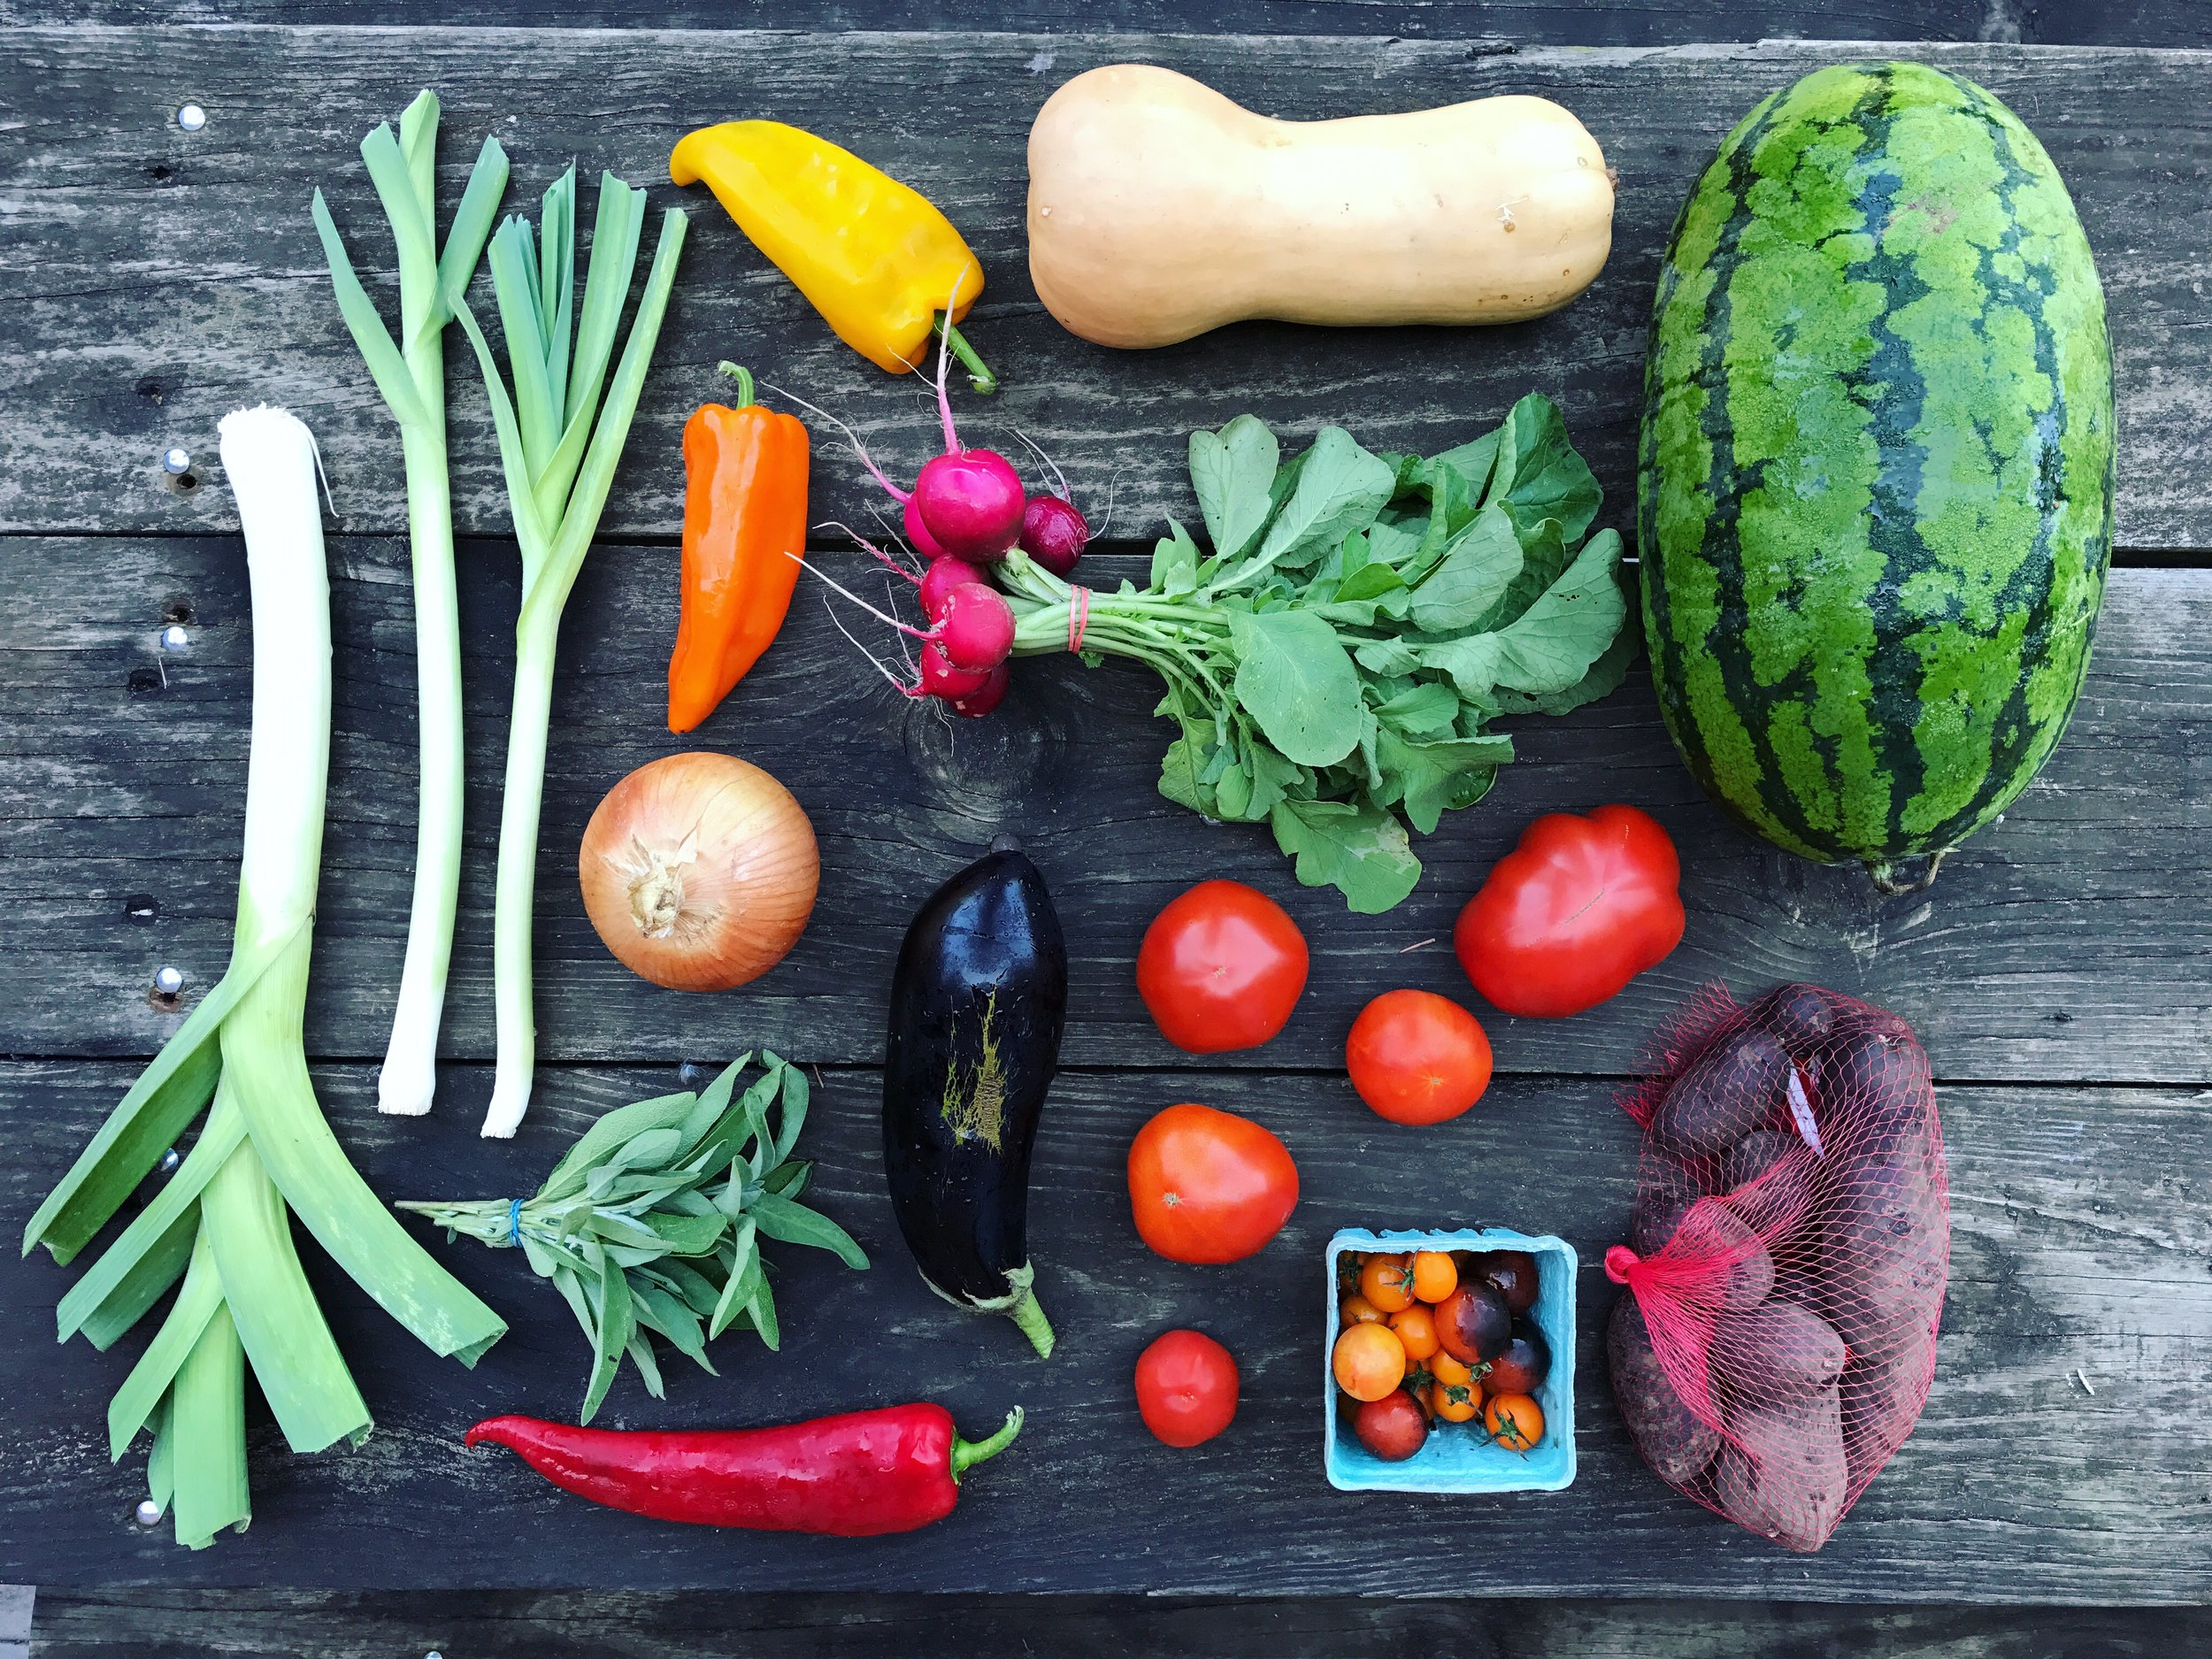 September Large Share // 10-14 items //  Sample box includes: Watermelon, butternut squash, purple potatoes, tomatoes, cherry tomatoes, Italian frying peppers, eggplant, leeks, radishes, onion and sage.